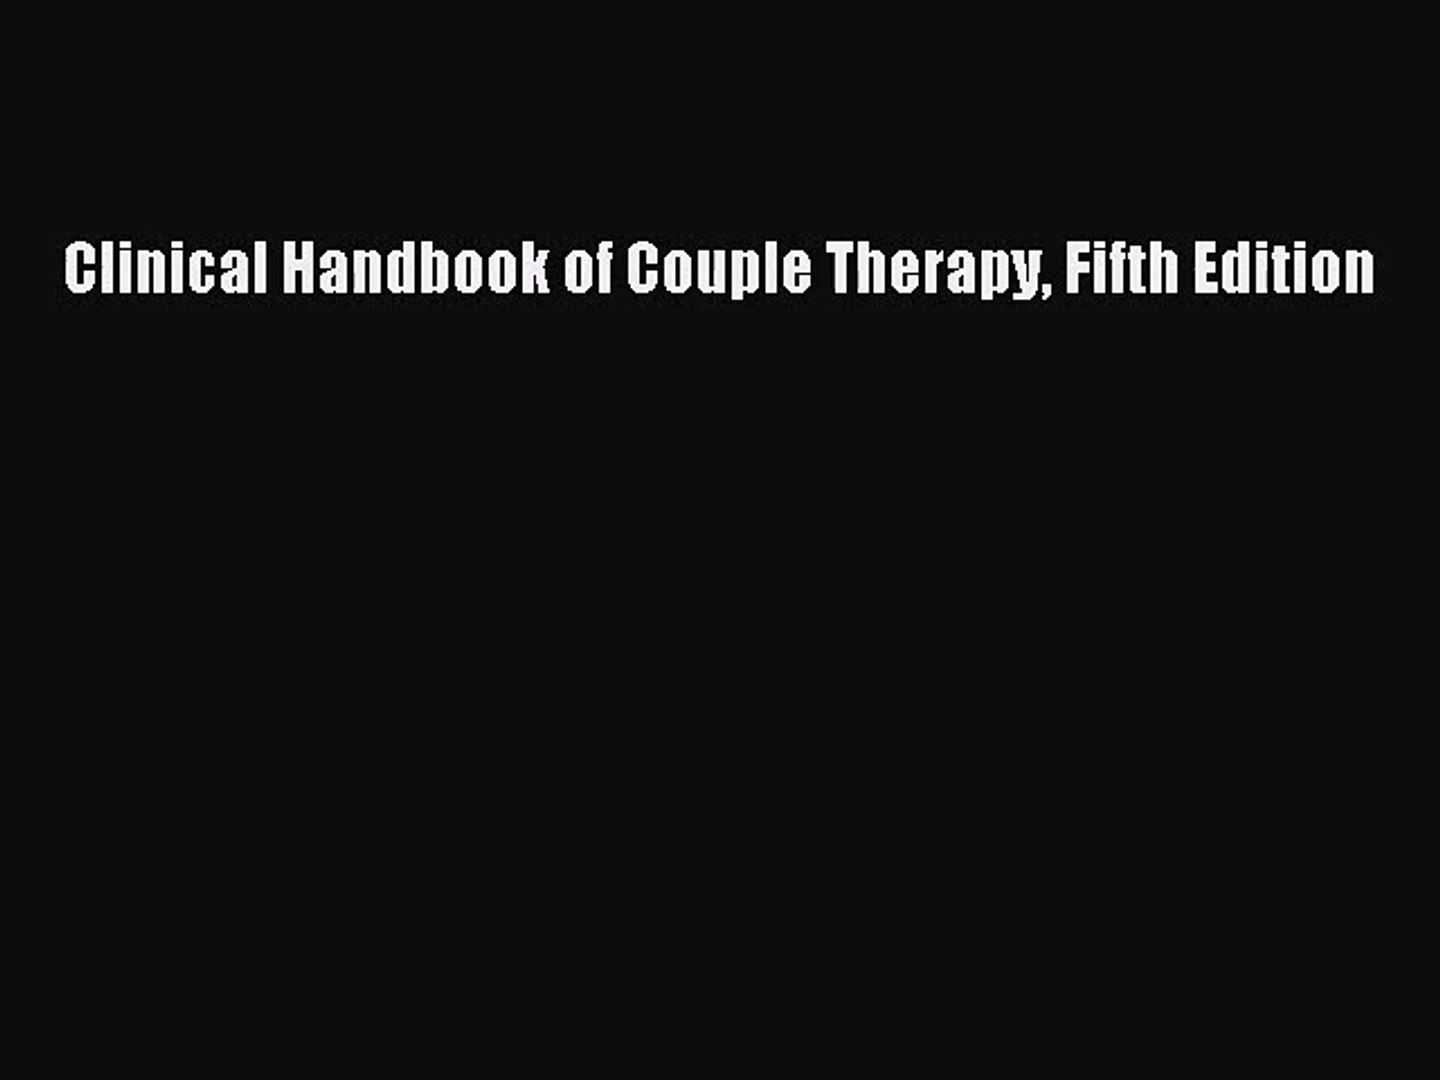 Clinical Handbook of Couple Therapy Fifth Edition